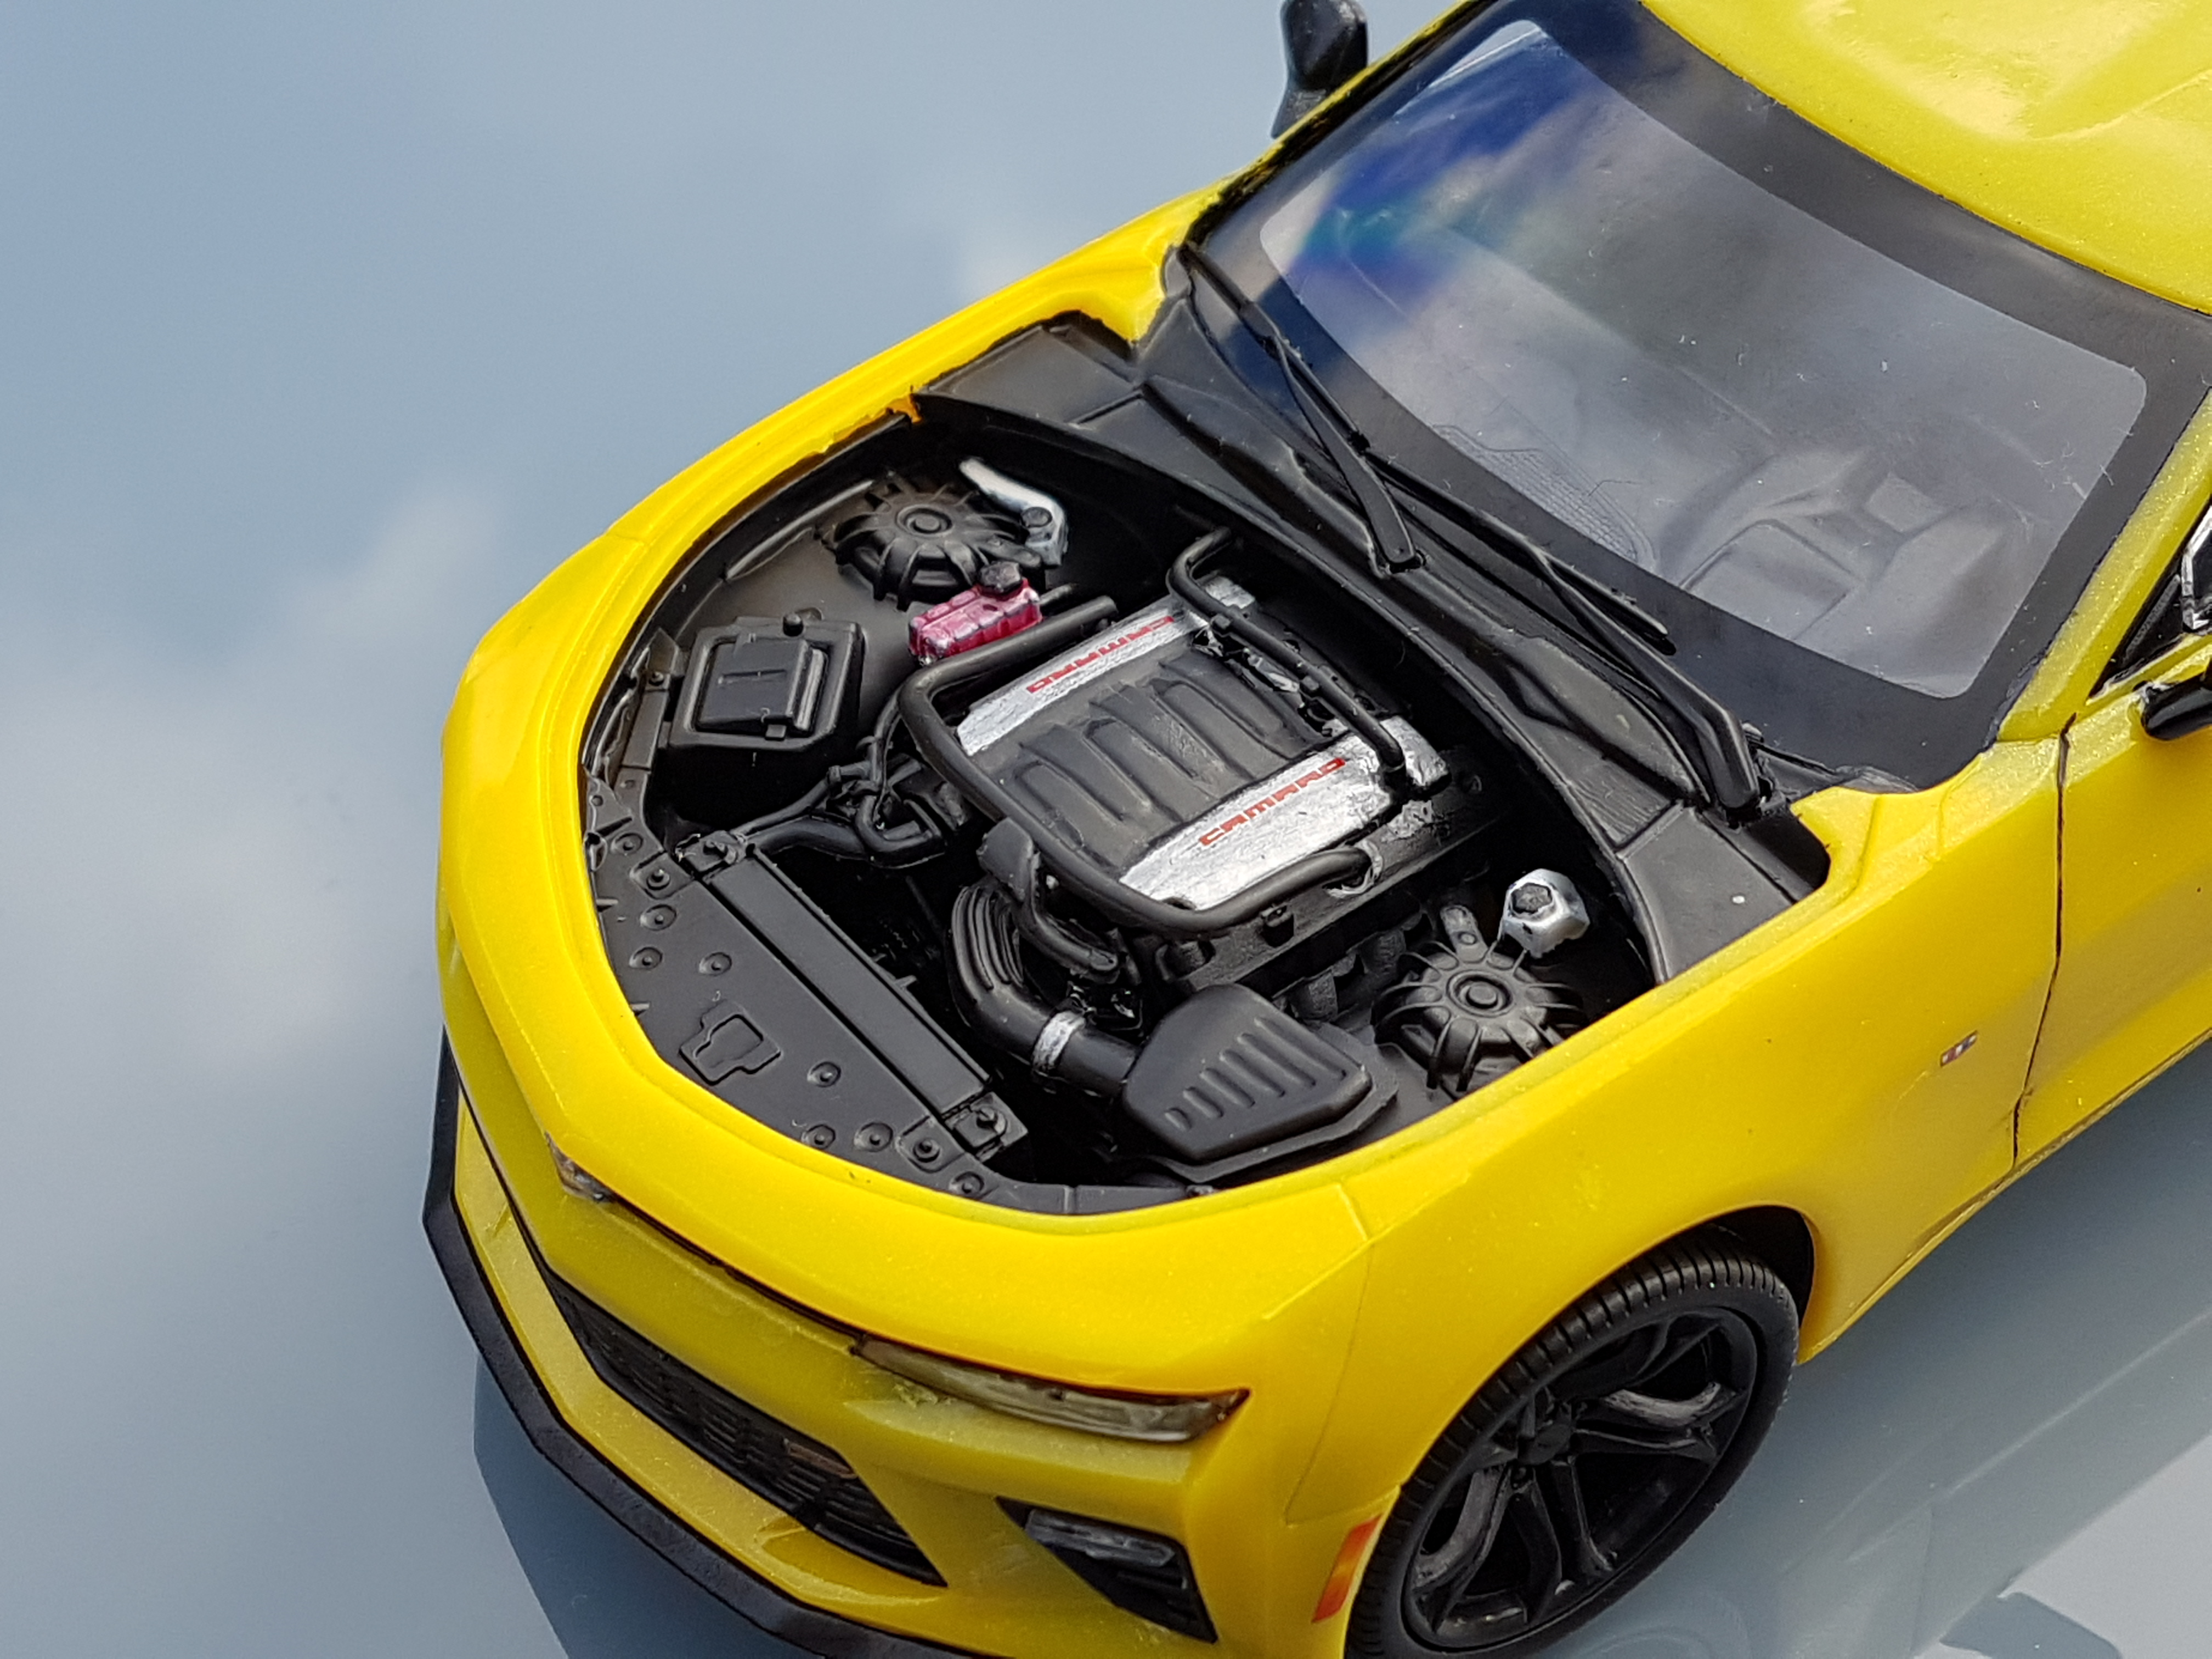 Engine Web as well Low Mileage Chevrolet Camaro Ss Coupe Repairable For Sale further X W additionally Side Profile Web further . on 2016 chevrolet camaro ss interior